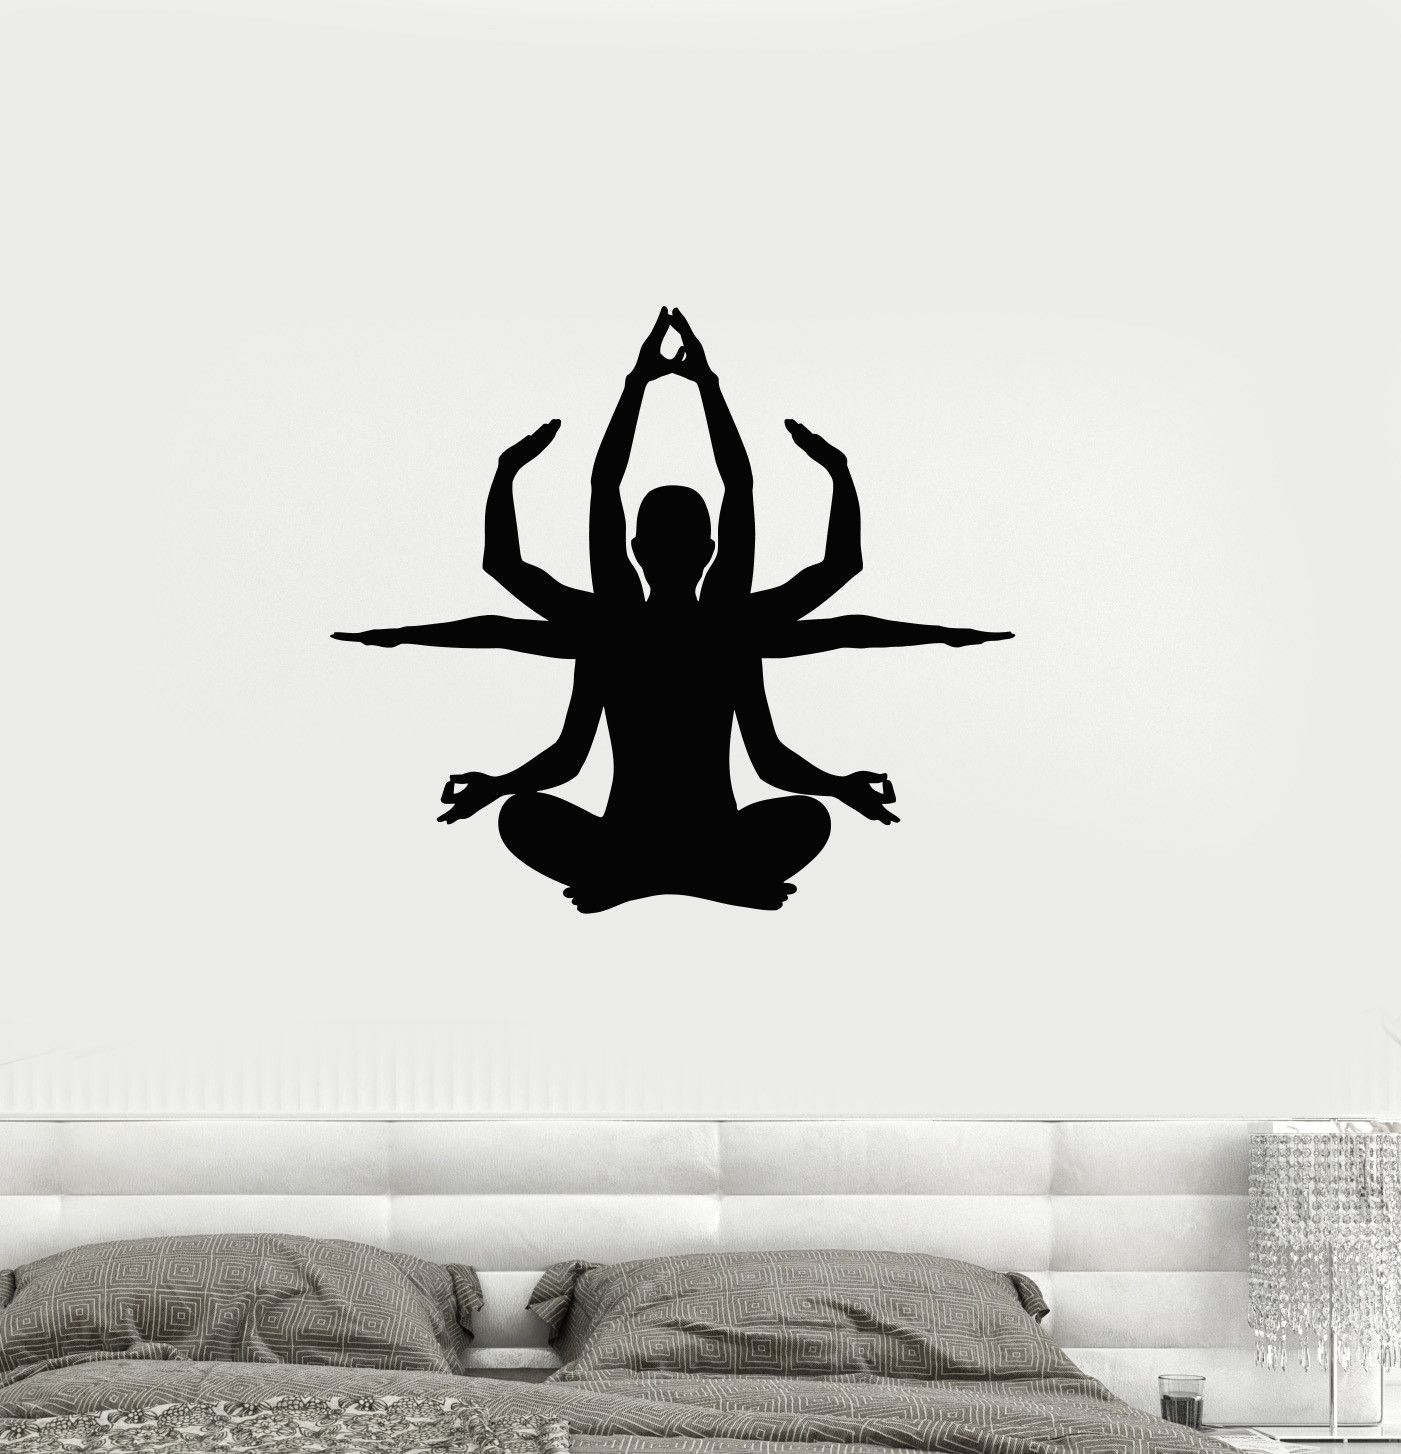 Vinyl Decal Yoga Pose Zen Buddhism Meditation Decor Wall Stickers - Hunting decals for trucksonestate rack attack truck van window vinyl decal sticker